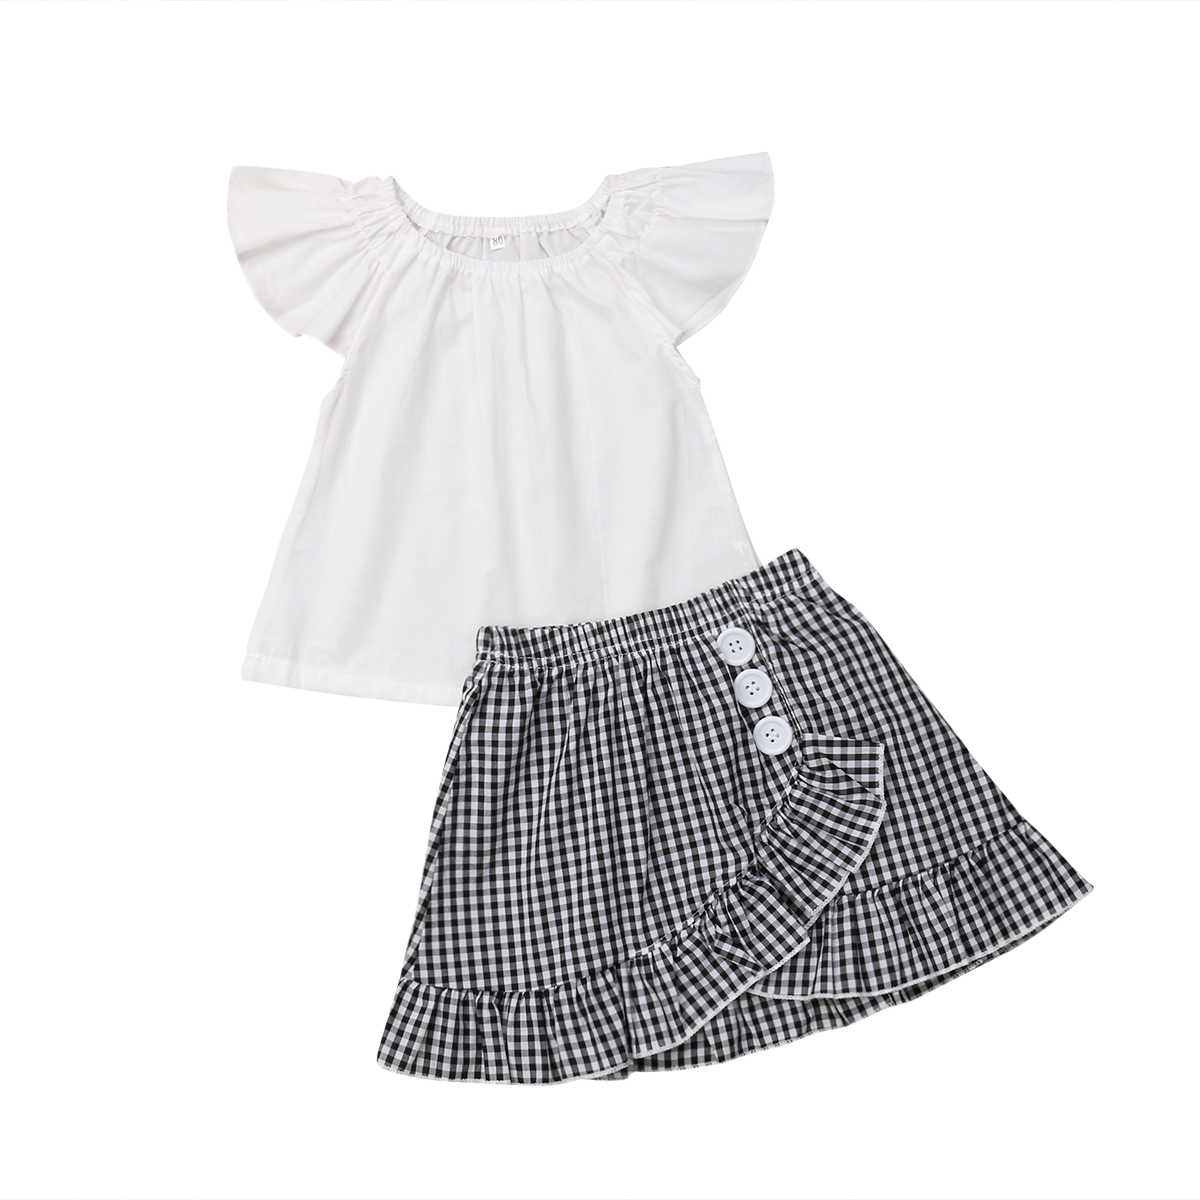 b035bb1047b Detail Feedback Questions about 2019 Brand New Infant Kid Baby Girl Clothes  2PCS Set Petal Sleeve White T Shirts Tops Button Ruffles Plaid Skirts  Summer ...